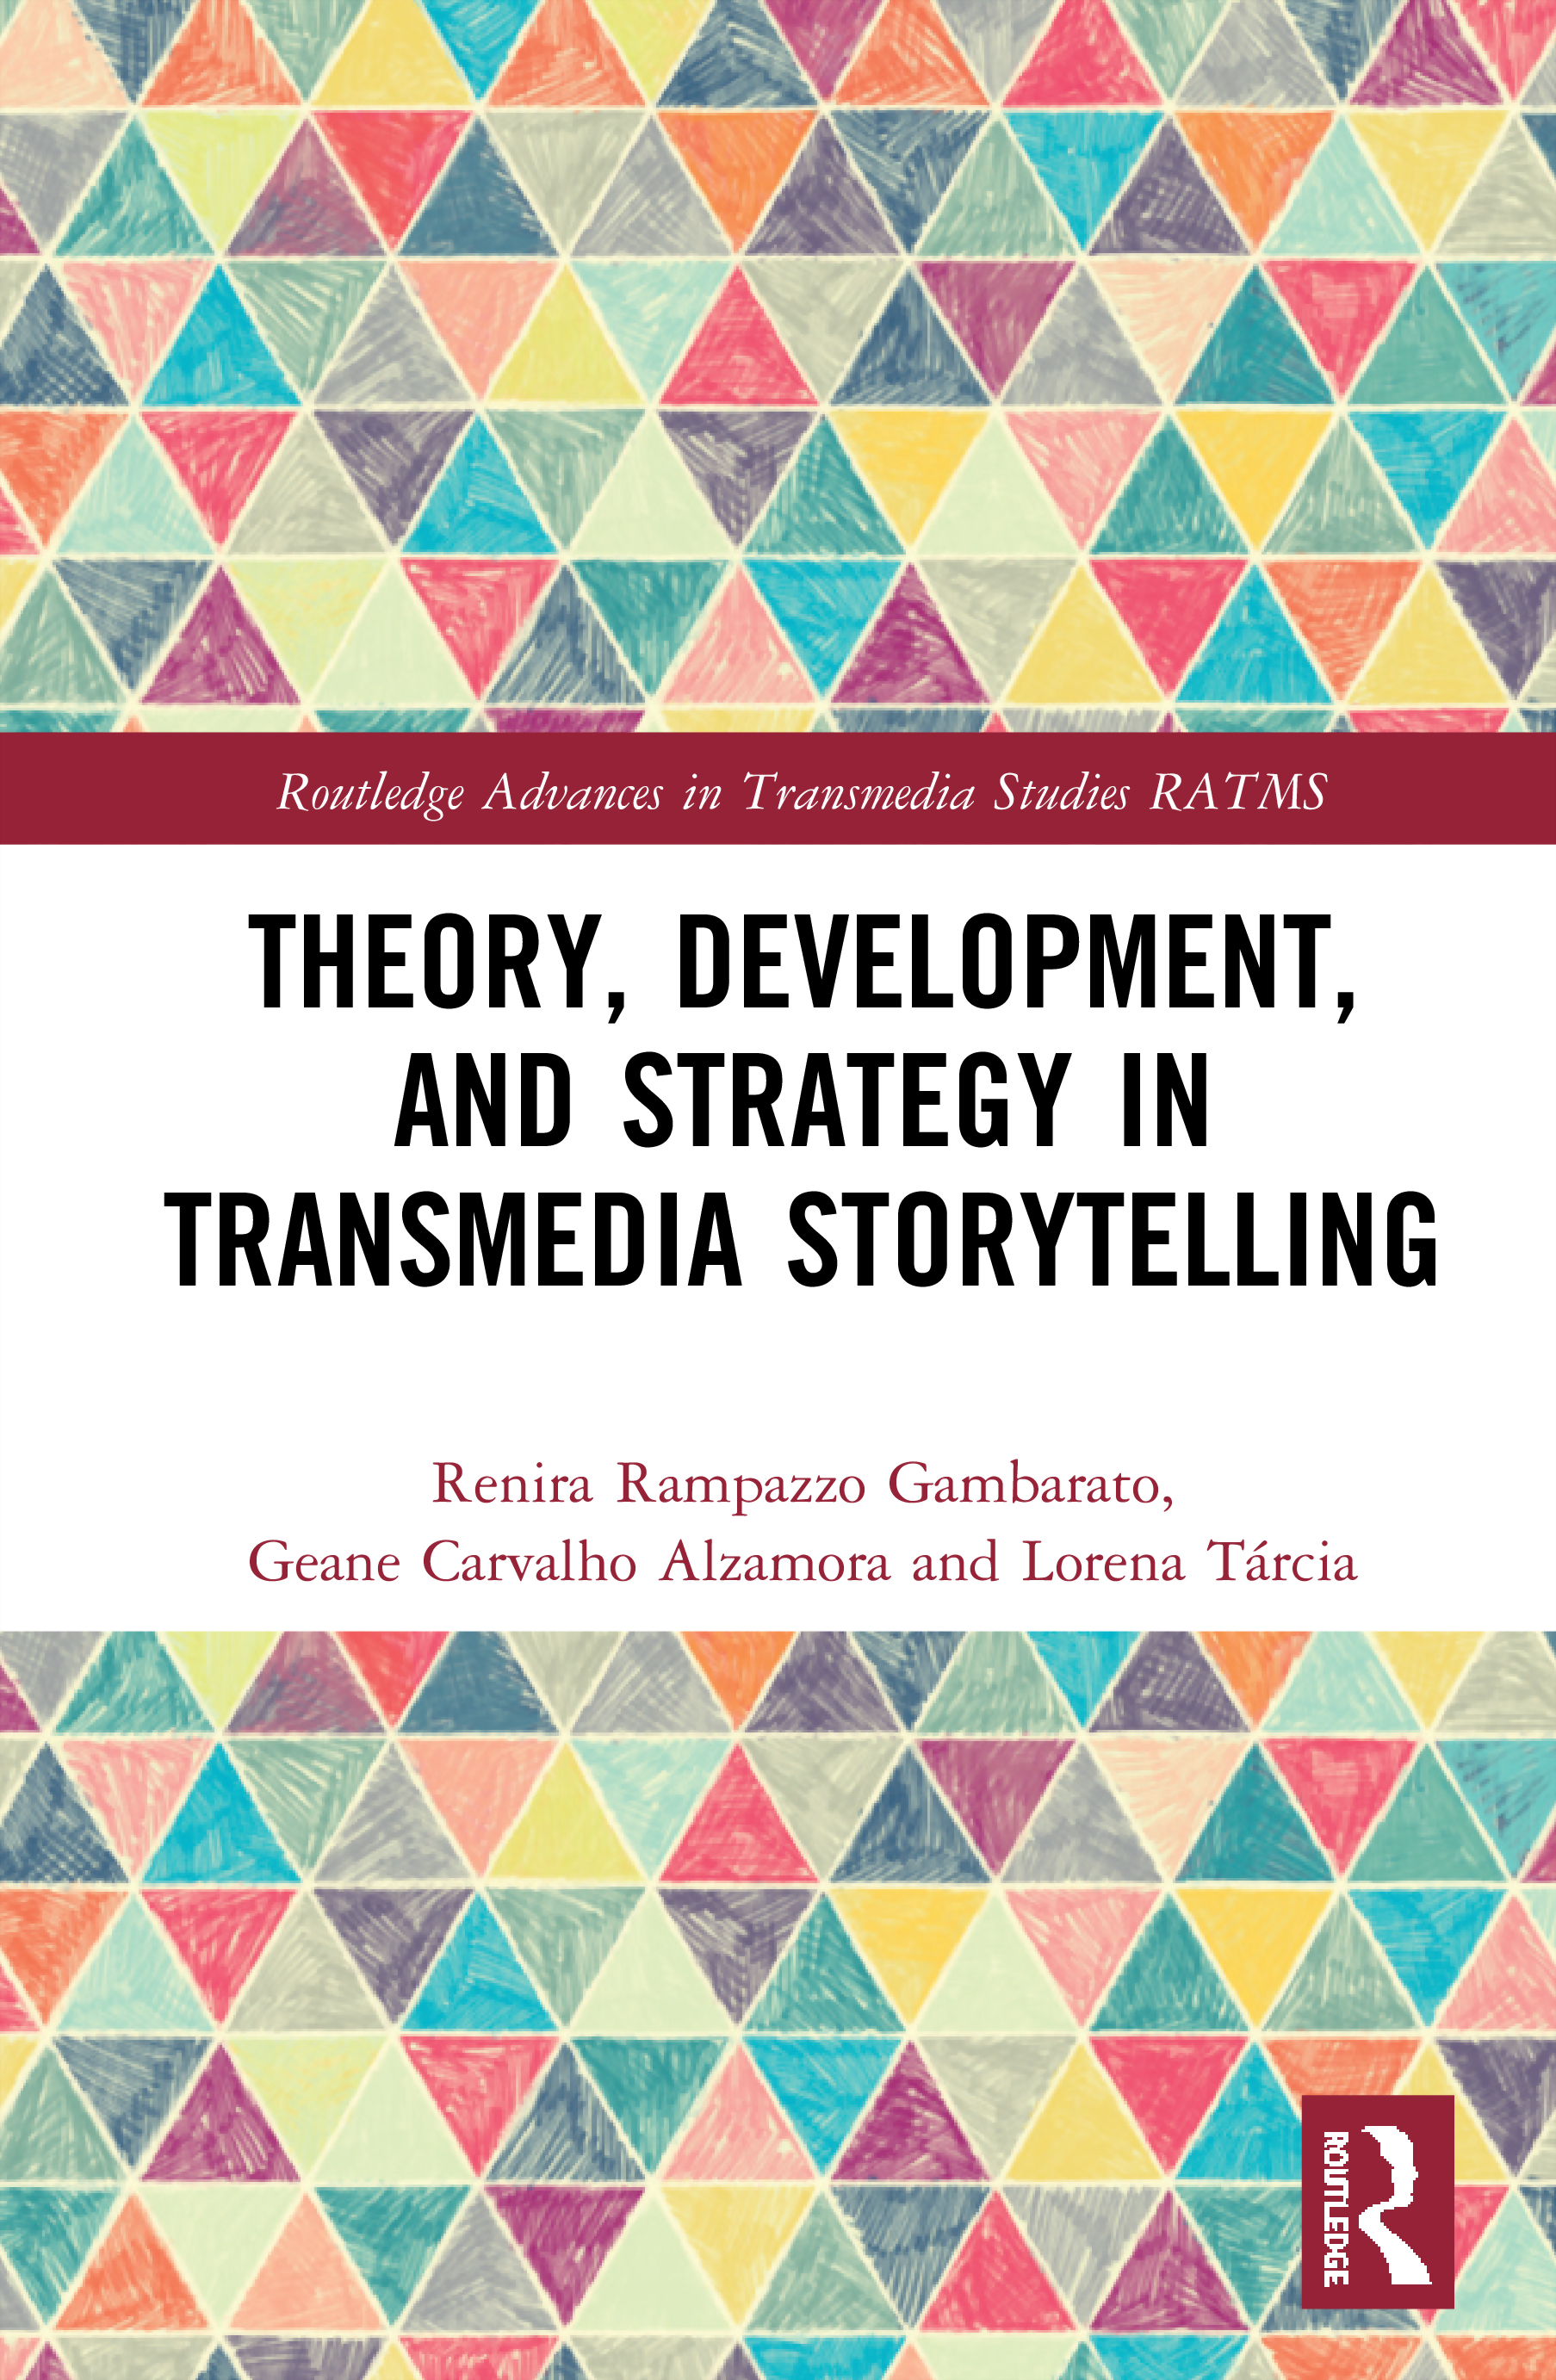 Theory, Development, and Strategy in Transmedia Storytelling book cover